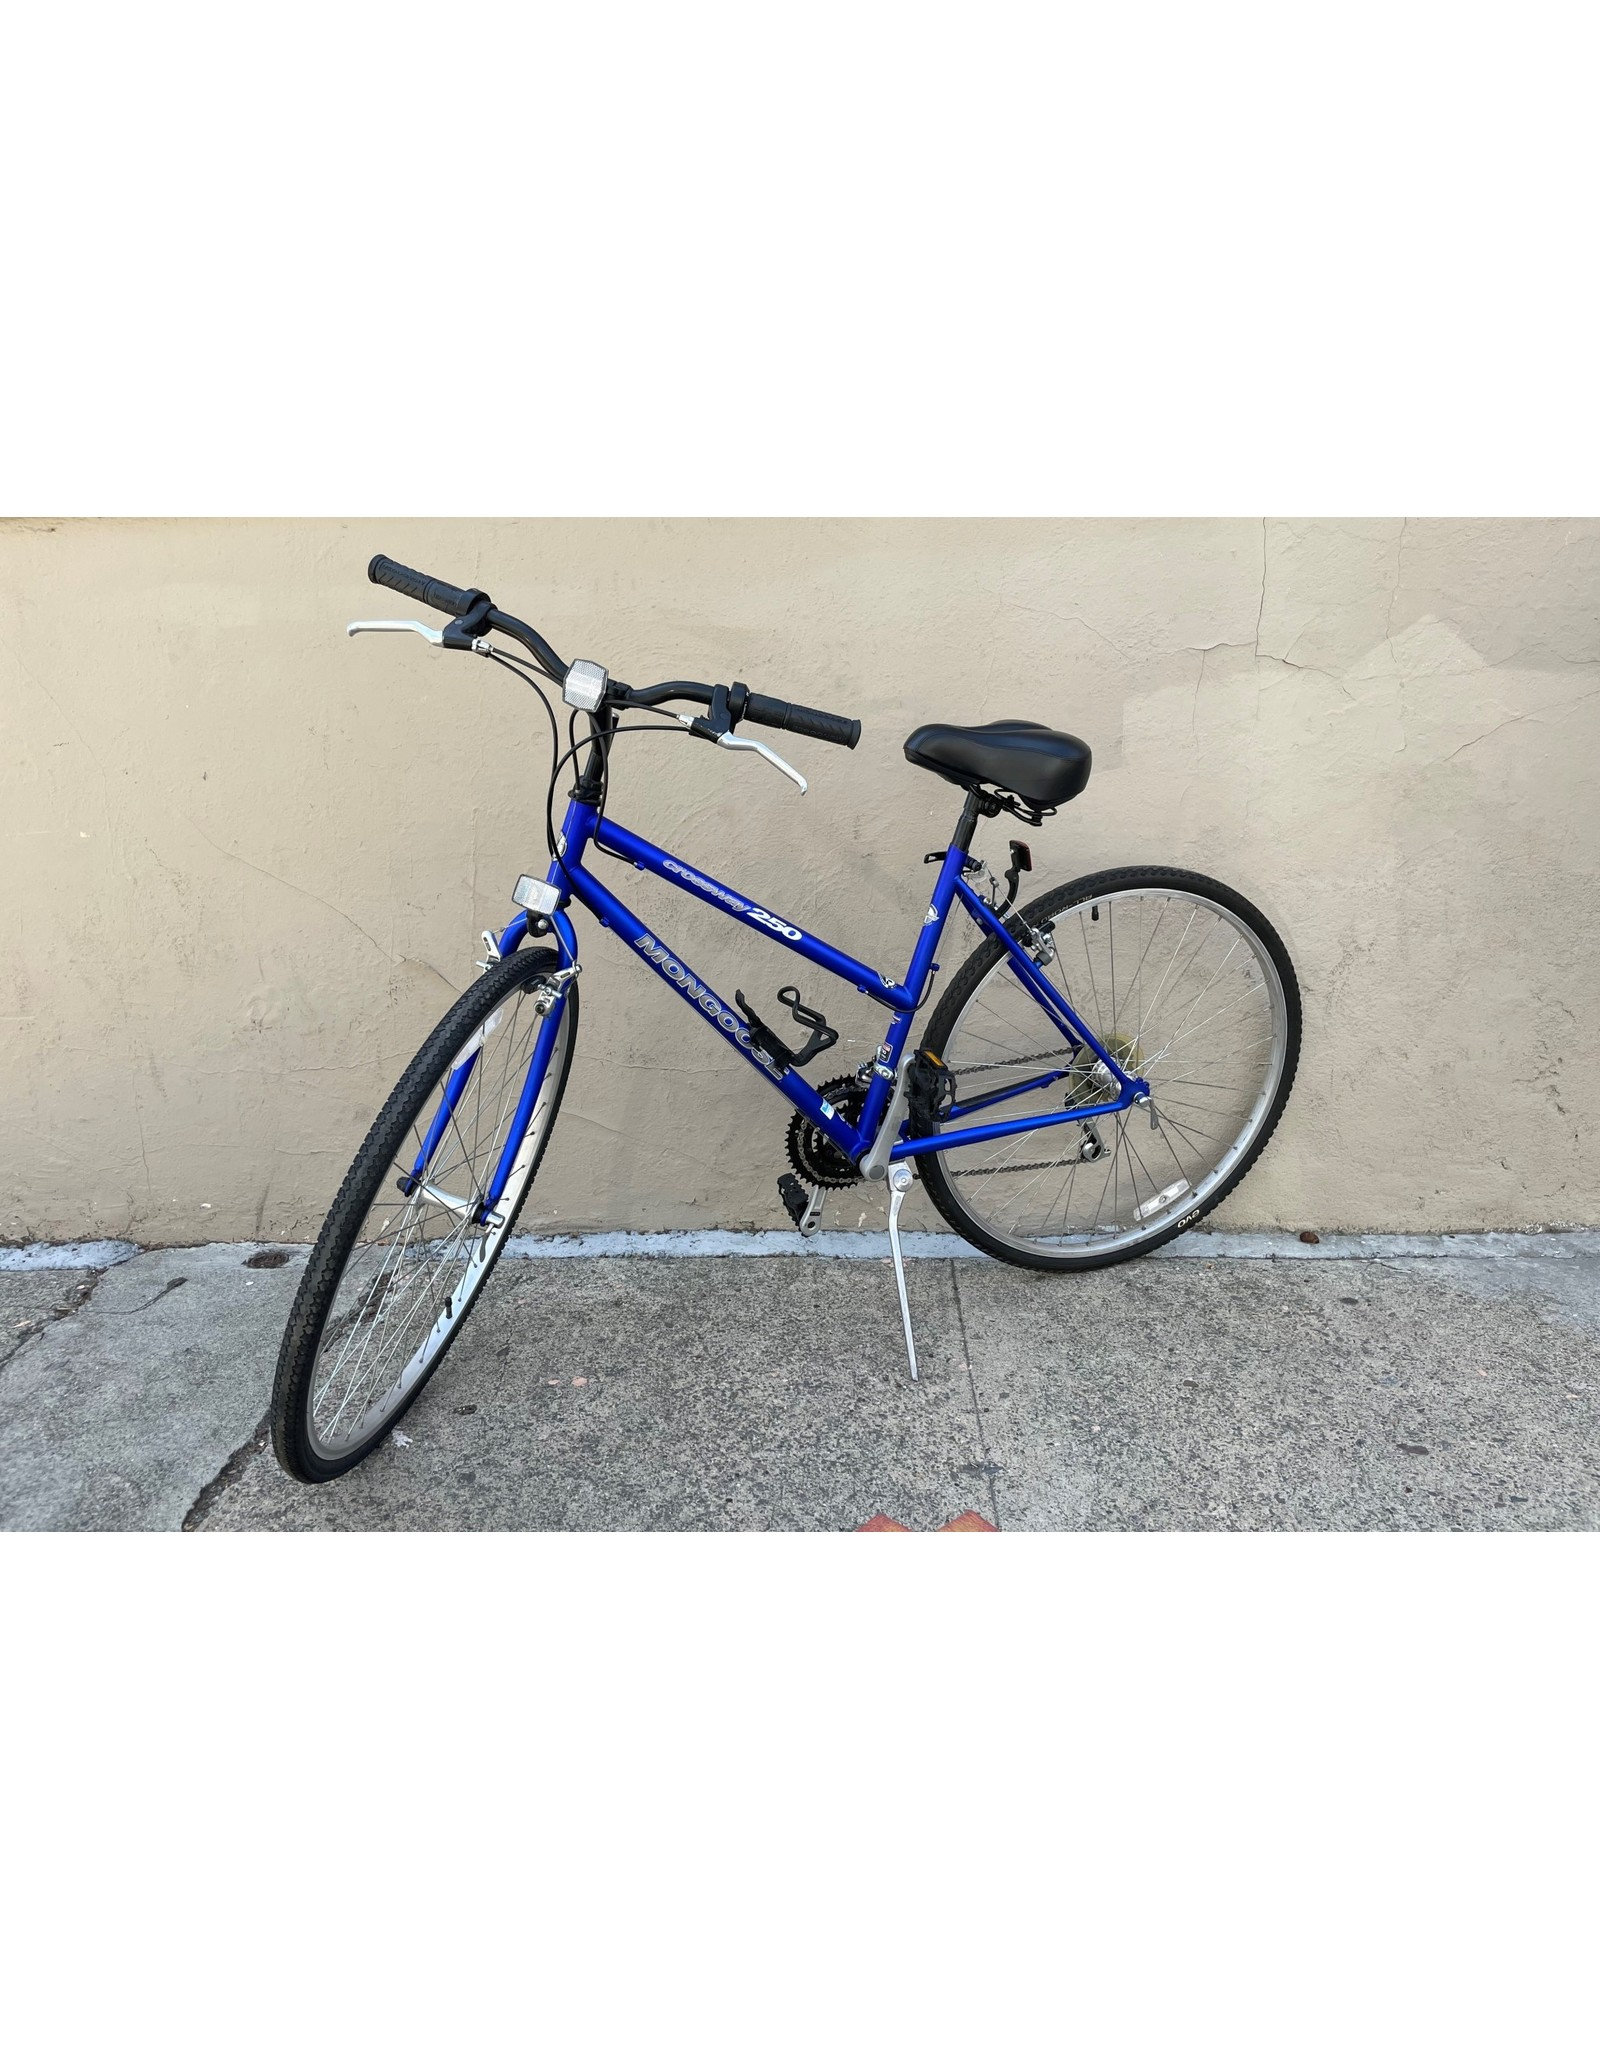 Mongoose Mongoose Crossway 250 Vintage, 1997, Blue, 19 Inches